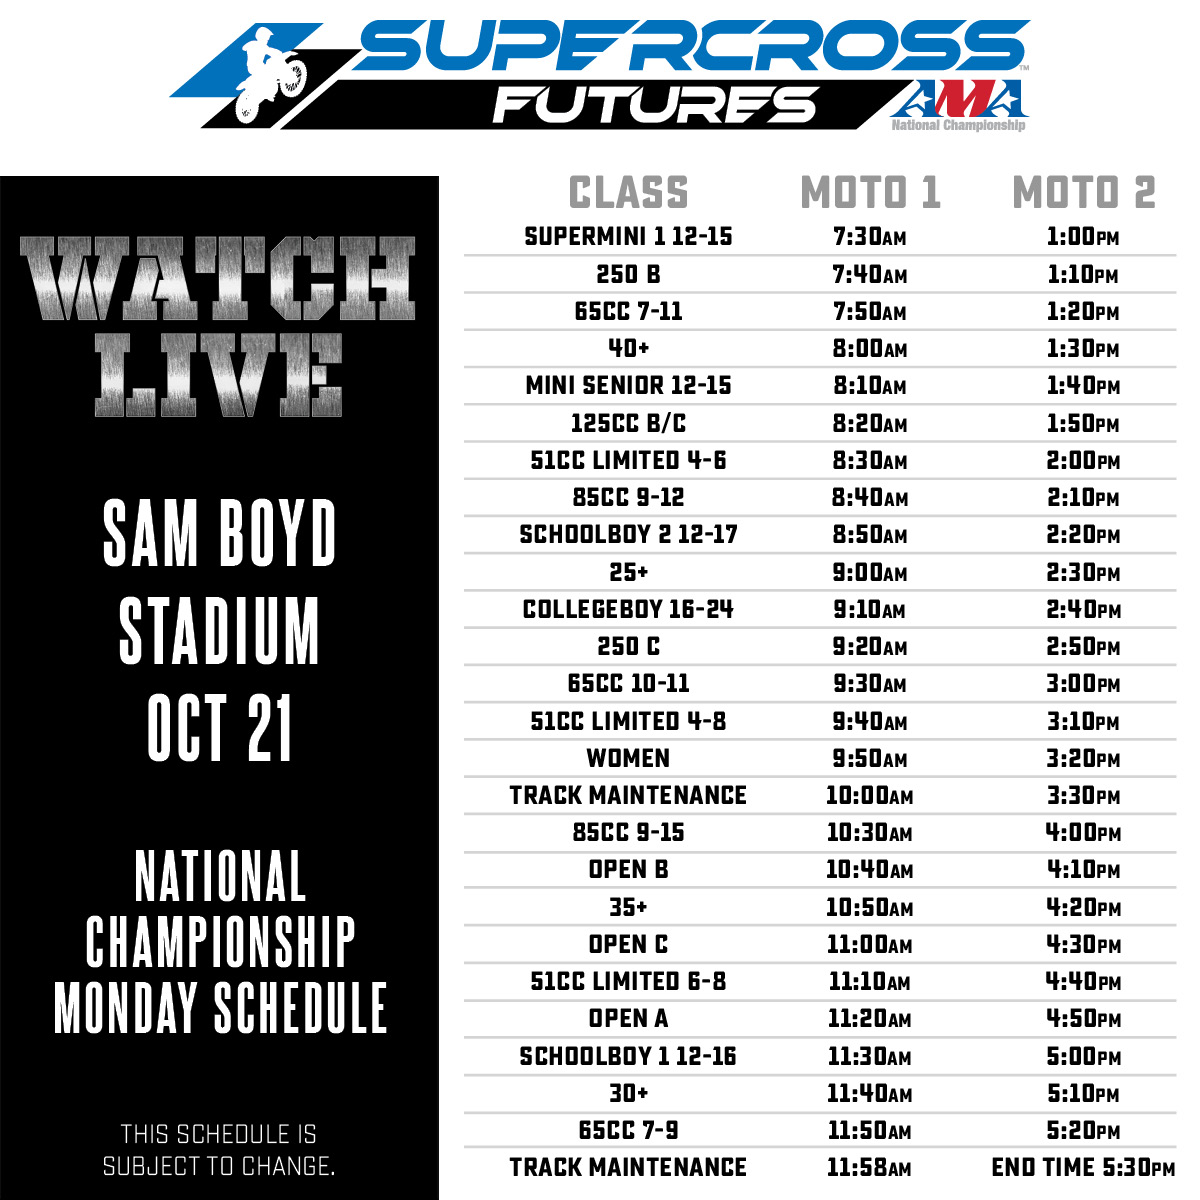 Supercross Futures Schedule